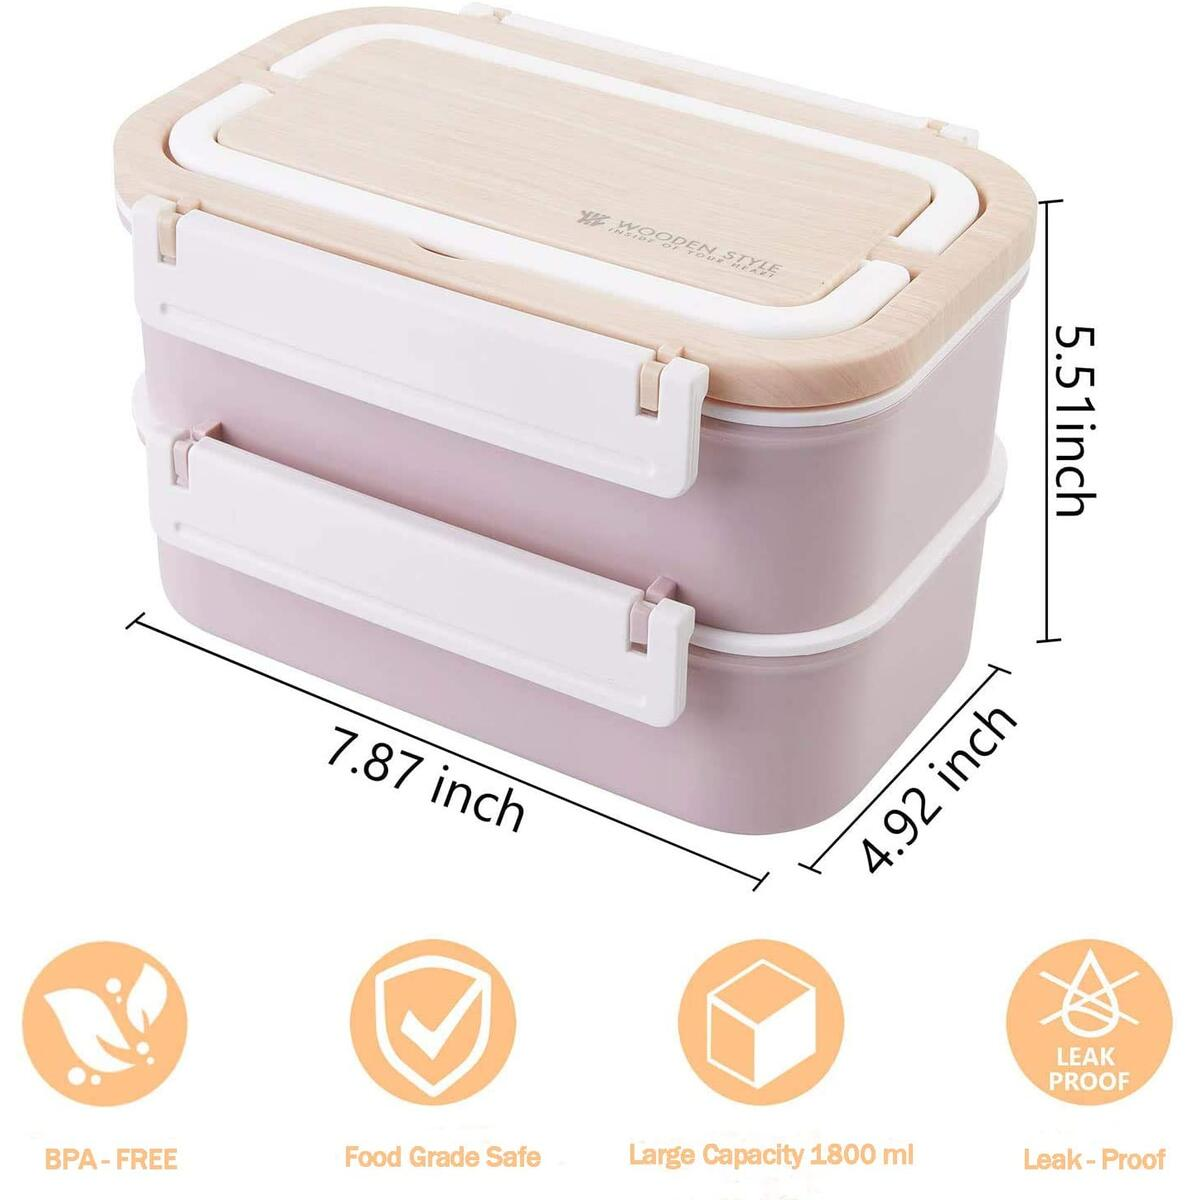 Stainless Steel Bento Lunch Box | Stackable Compartment & Bamboo &Leakproof Design Bento Box | 2-Tier Portable Insulated Food Containers with Utensil(Pink)